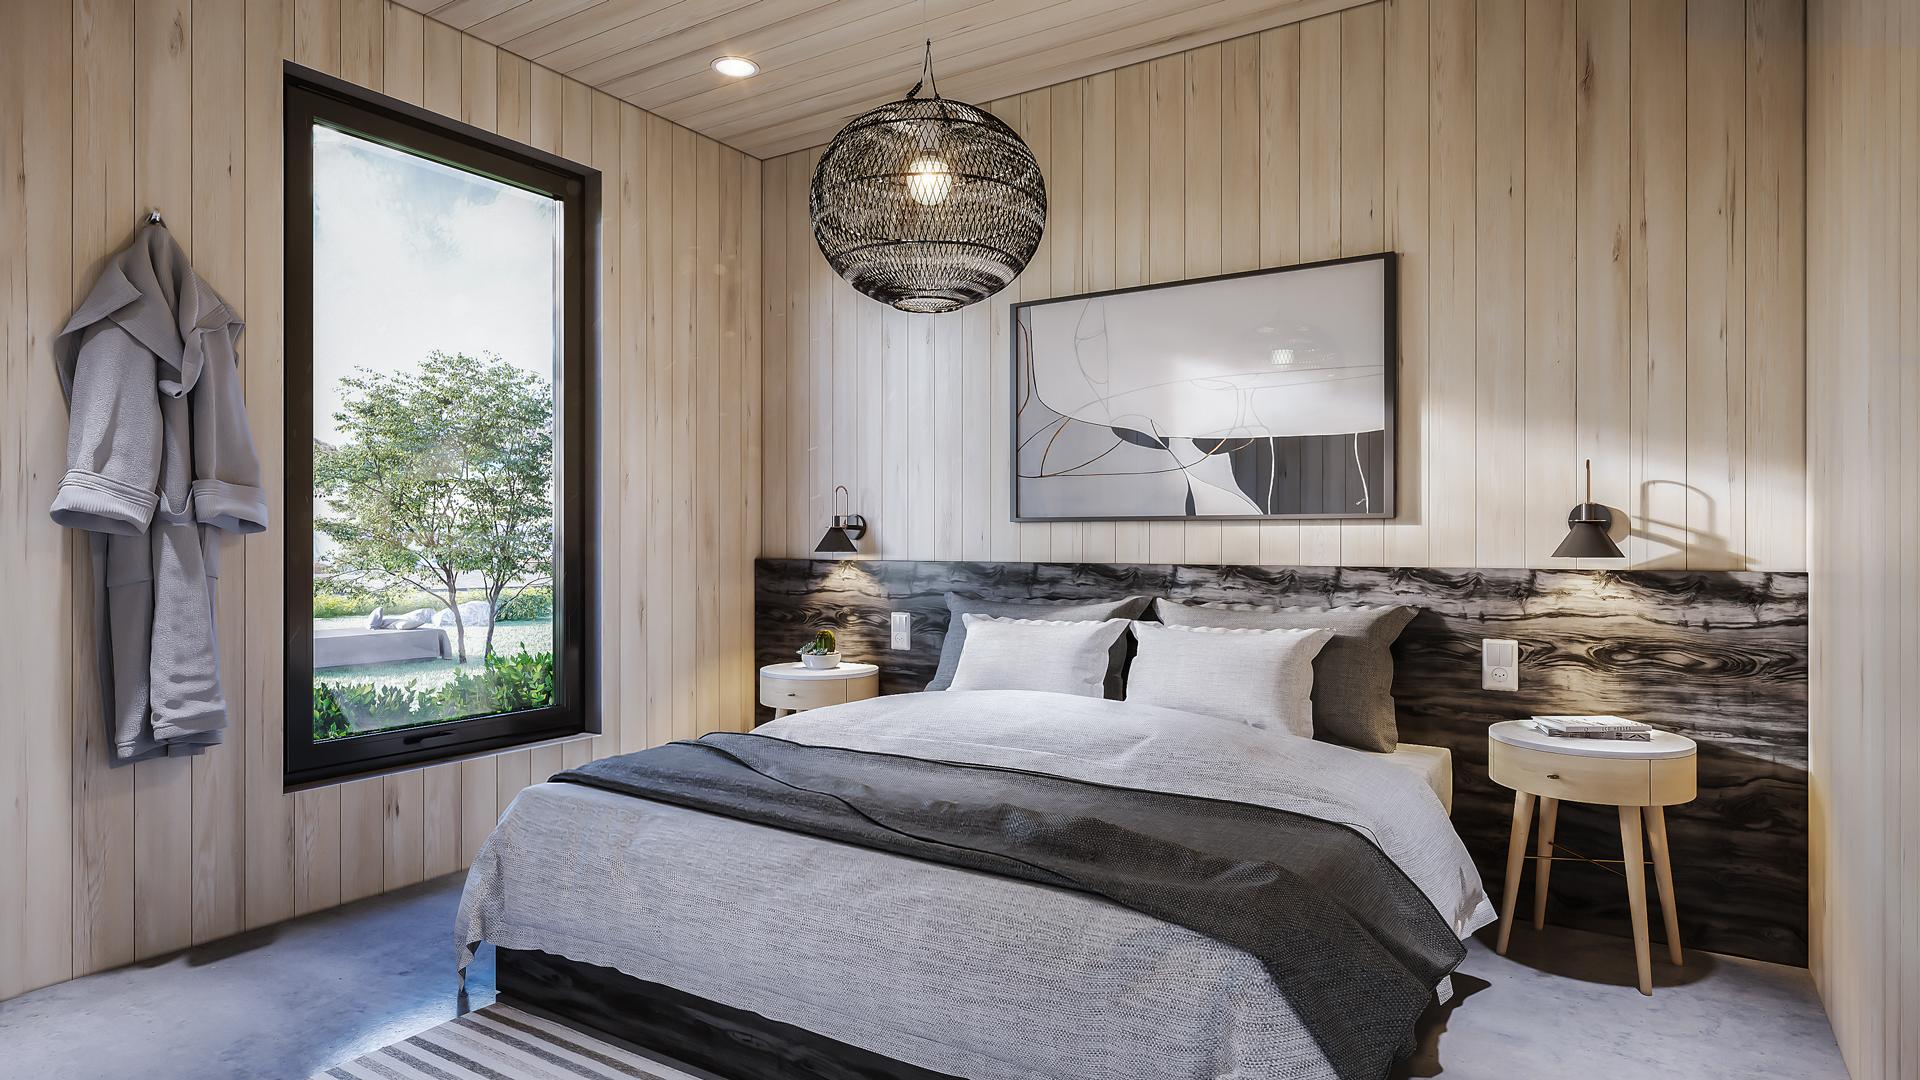 Ontario's coolest cabins to rent | The master bedroom inside a cabin at Wander resort in Prince Edward County, Ontario